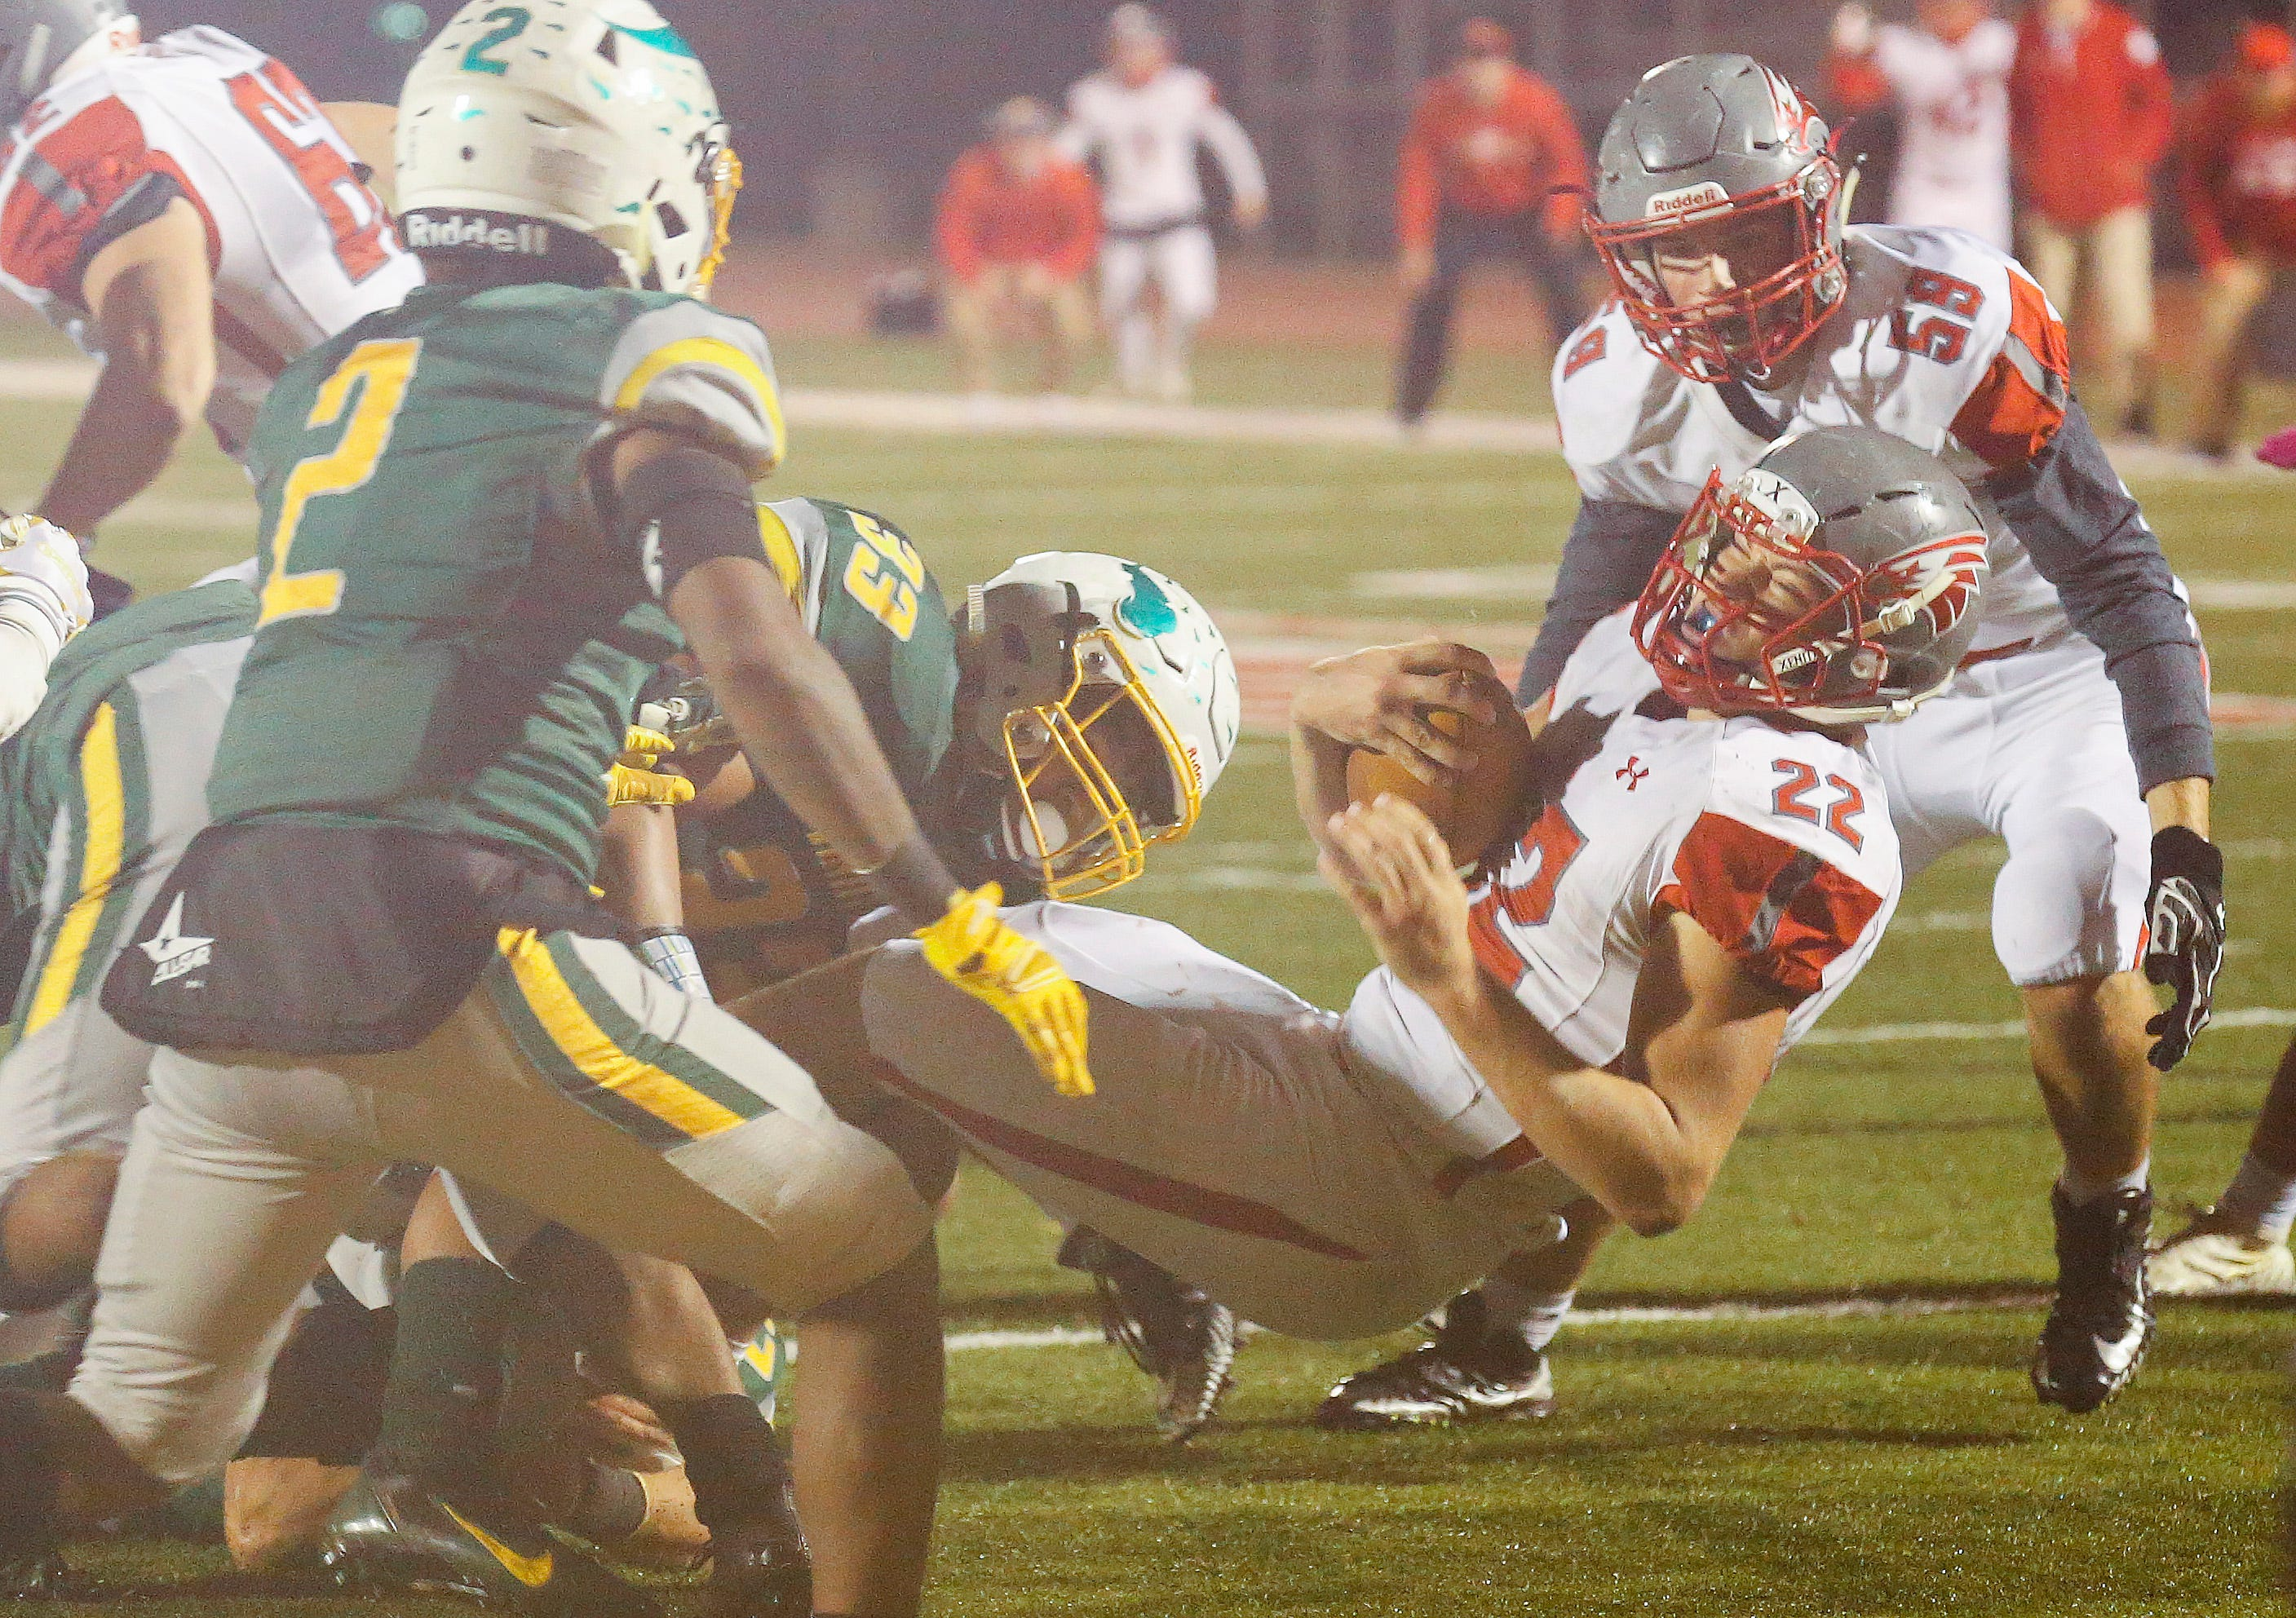 Sean Sample, of Nixa, is stopped during a two-point conversion attempt as the Parkview Vikings defeated the Nixa Eagles 42-41 in overtime at JFK Stadium on Friday, Nov. 2, 2018.